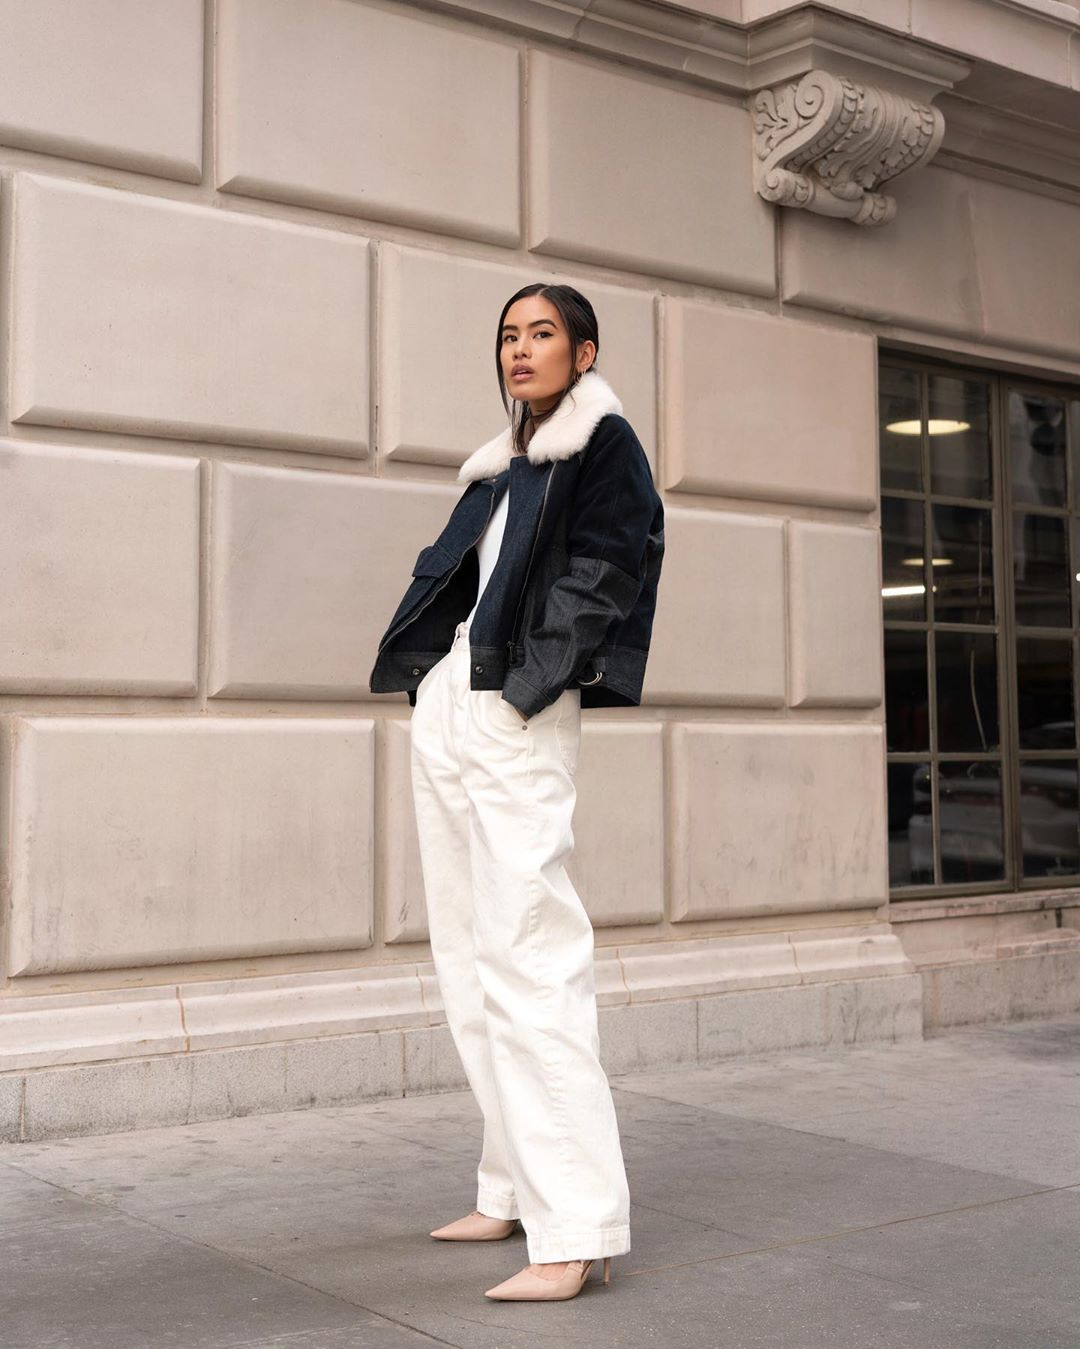 The Chicest Way to Wear White Jeans in the Winter